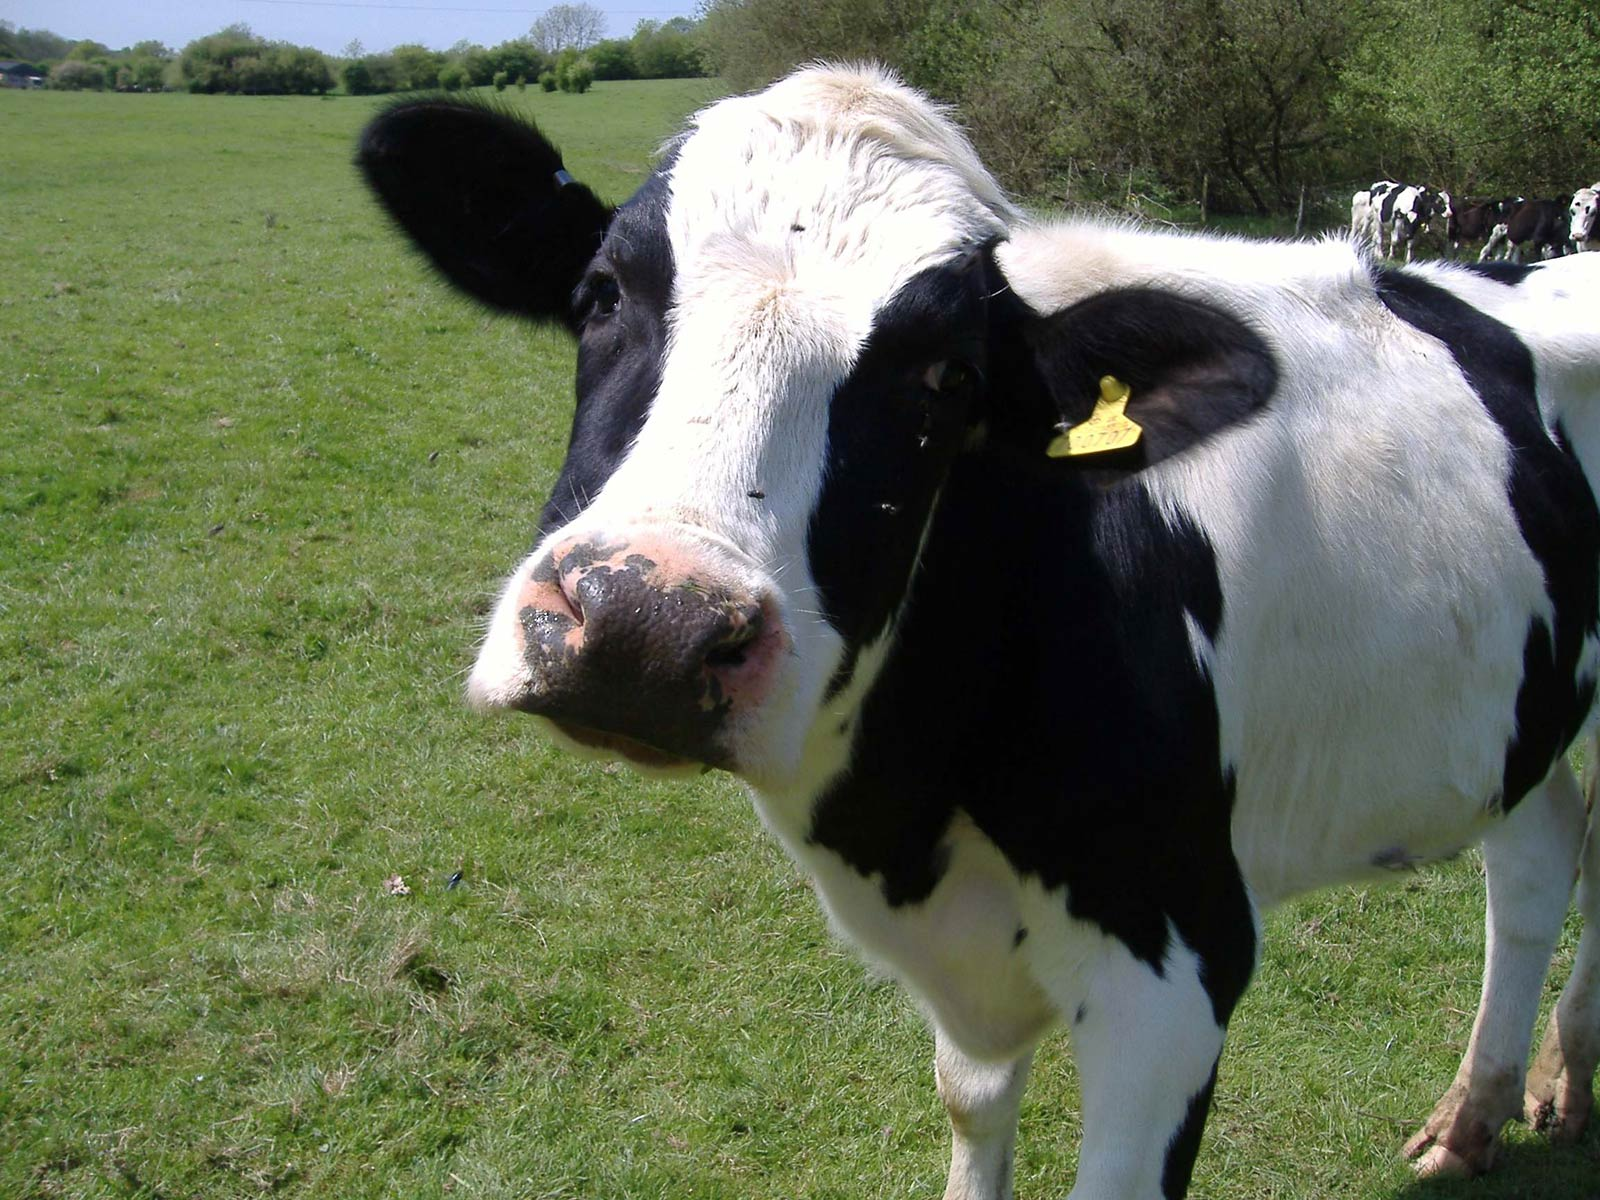 free Cow wallpaper wallpapers download